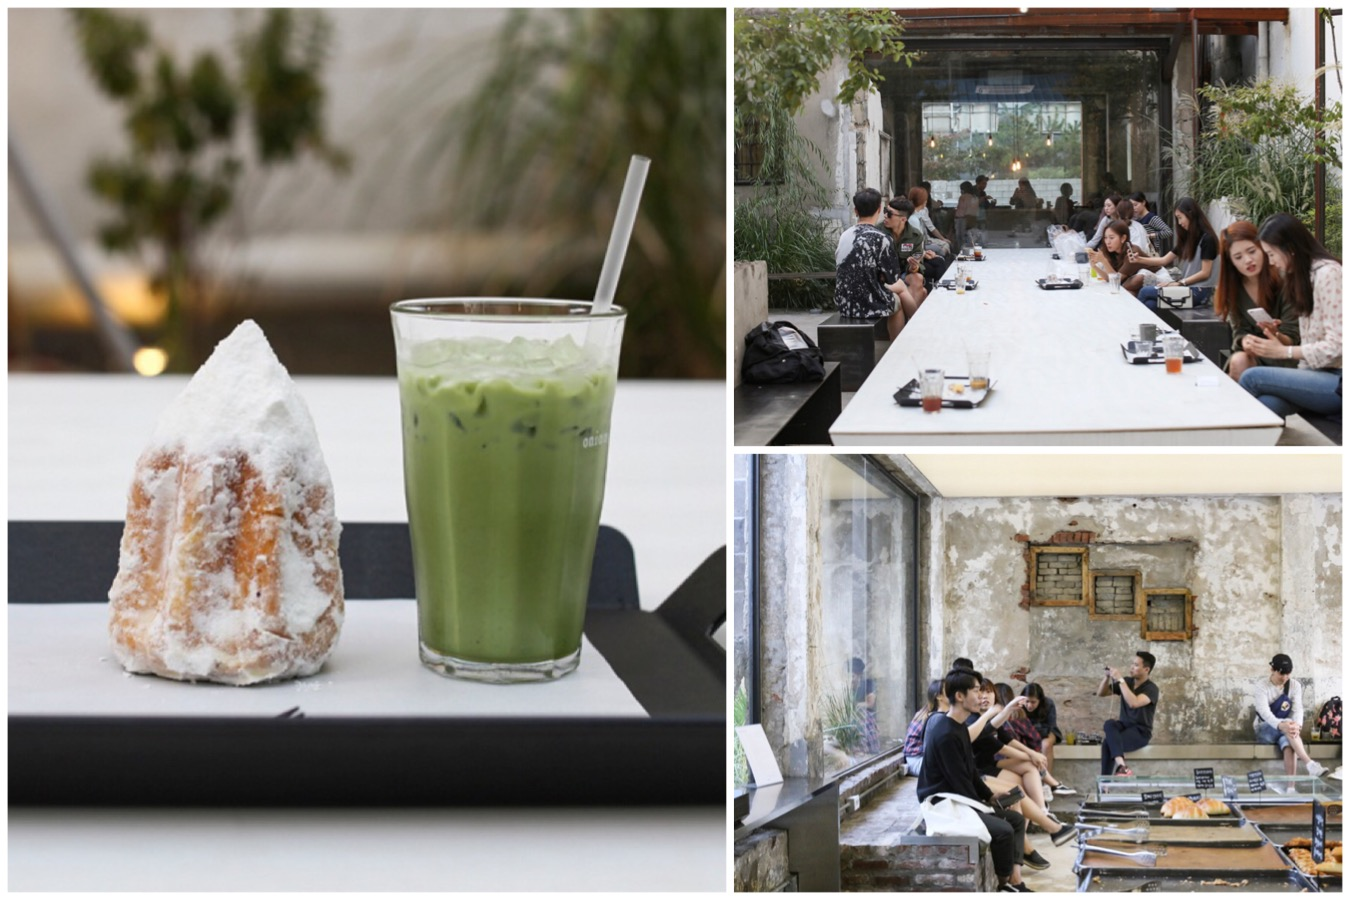 """Café Onion - The Hippest Café To Visit In Seoul Spells """"Industrial Chic"""" All Over. At Seongsu-dong, The Brooklyn of Seoul"""